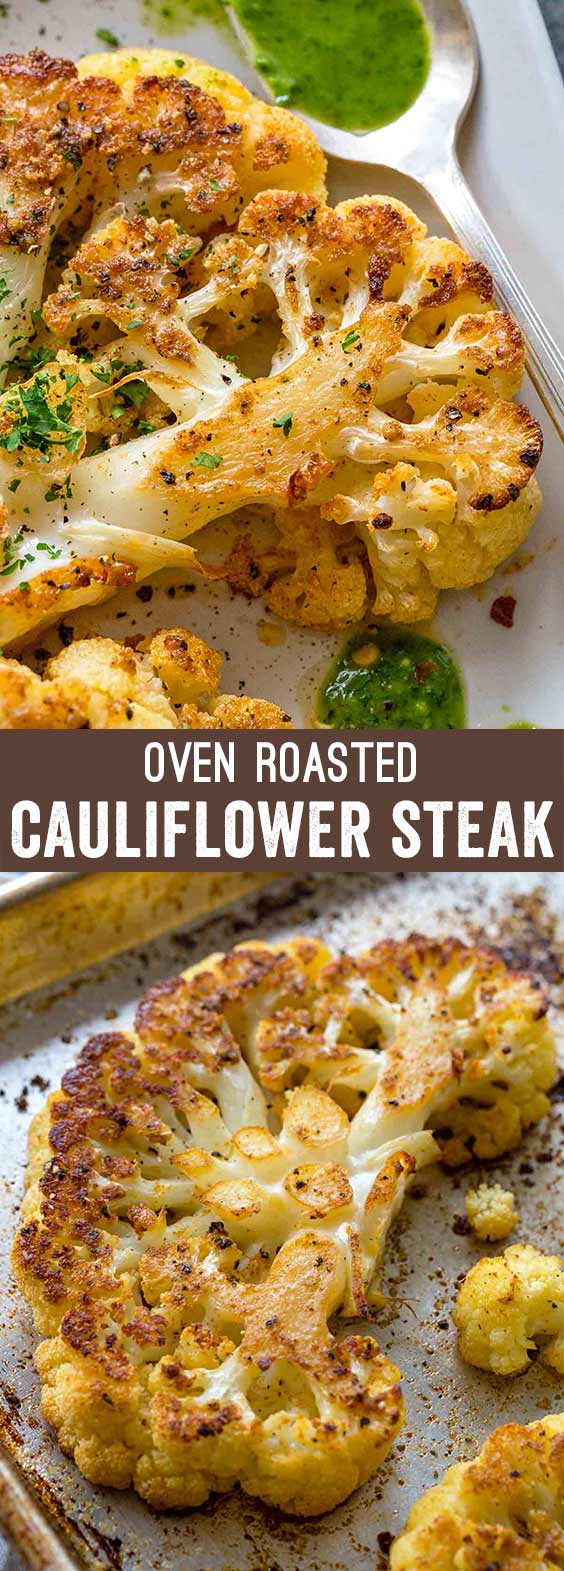 Cauliflower steaks made oven roasted with simple seasonings like salt, pepper, garlic powder, and paprika. Cutting the cauliflower into thick slices makes for a hearty and satisfying plant-based meal. #cauliflowersteaks #lowcarb